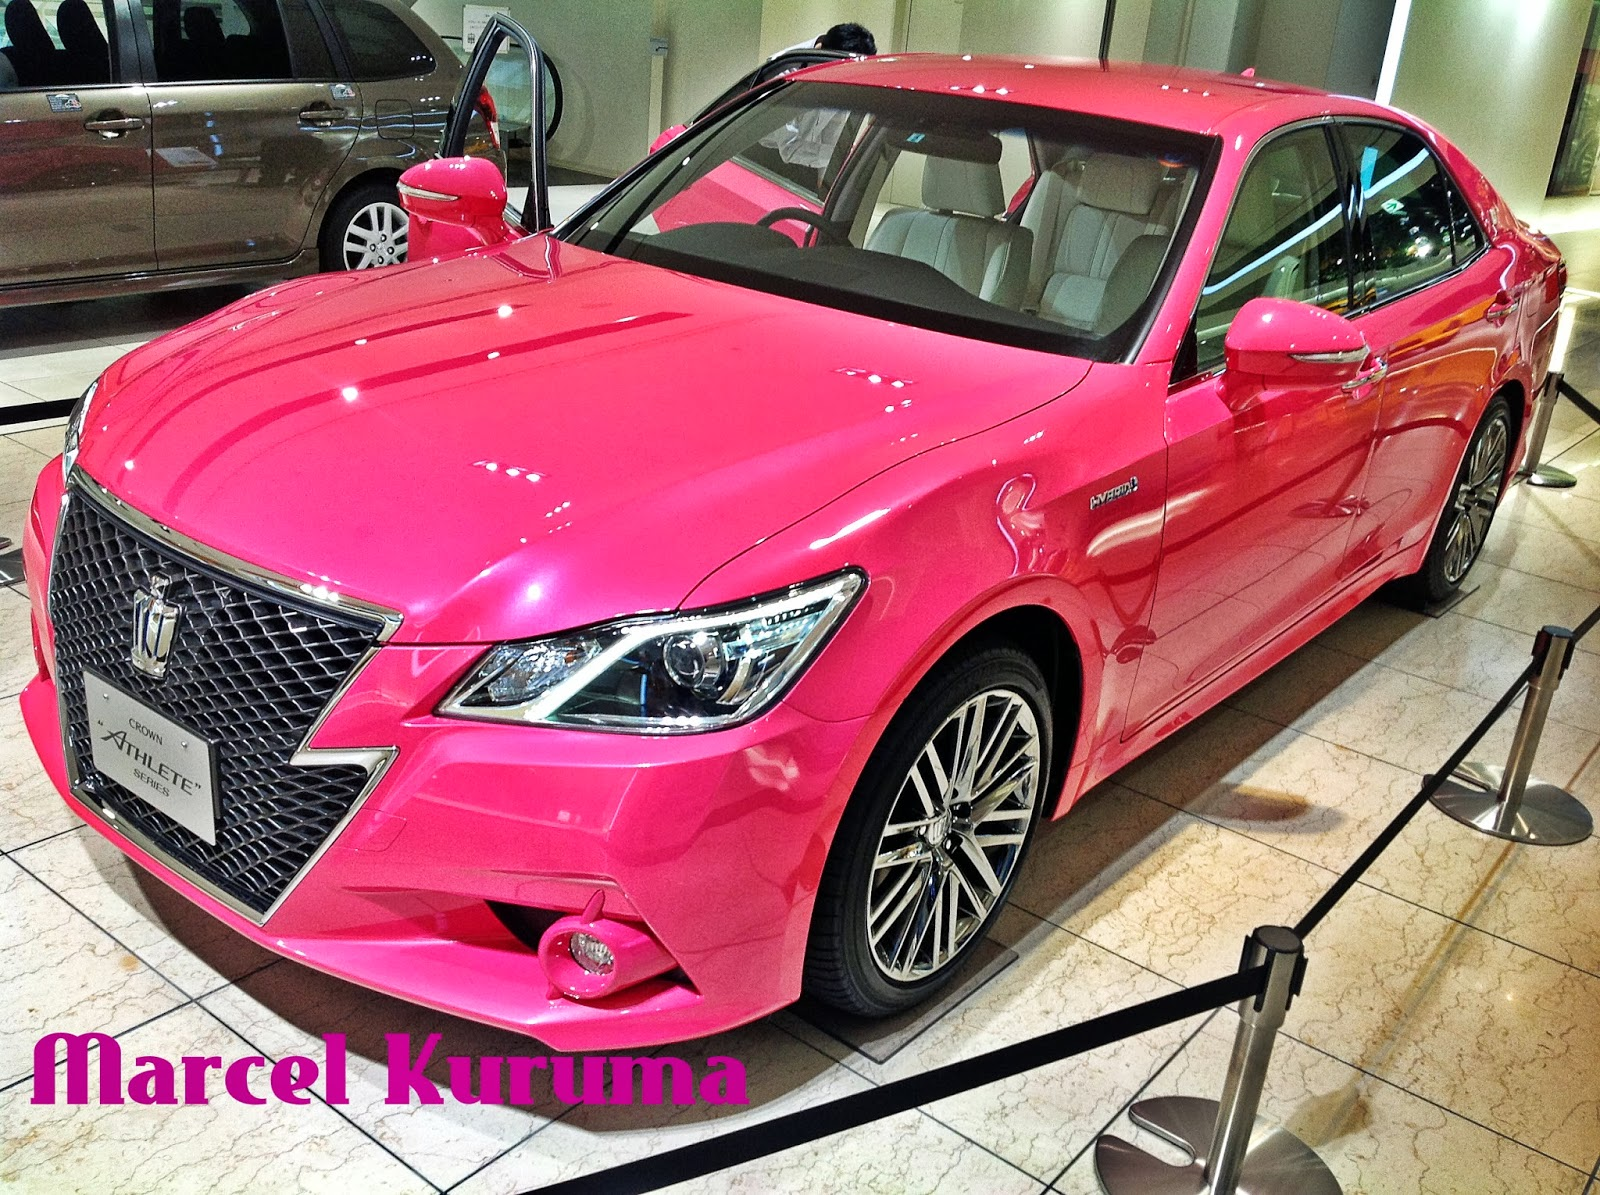 Toyota crown athlete pink limited edition